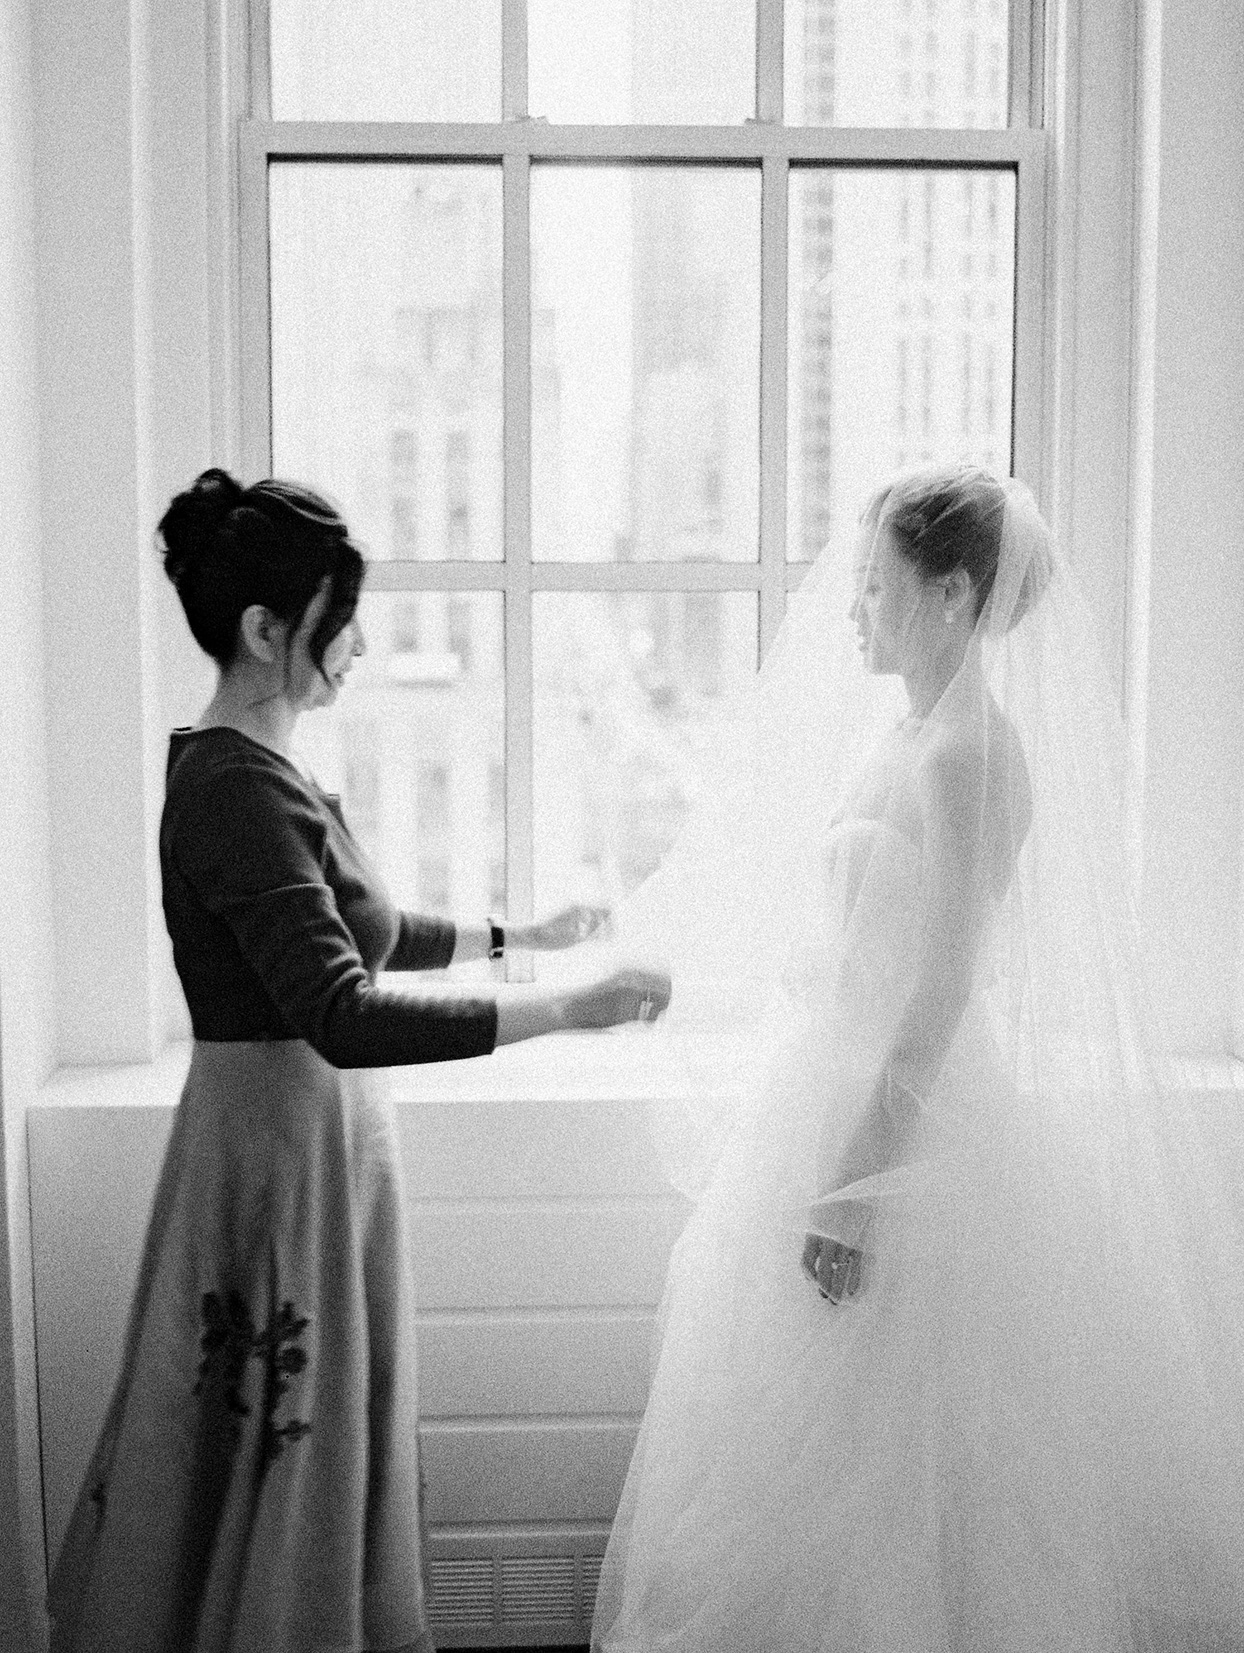 mother helping bride put on her veil in front of window